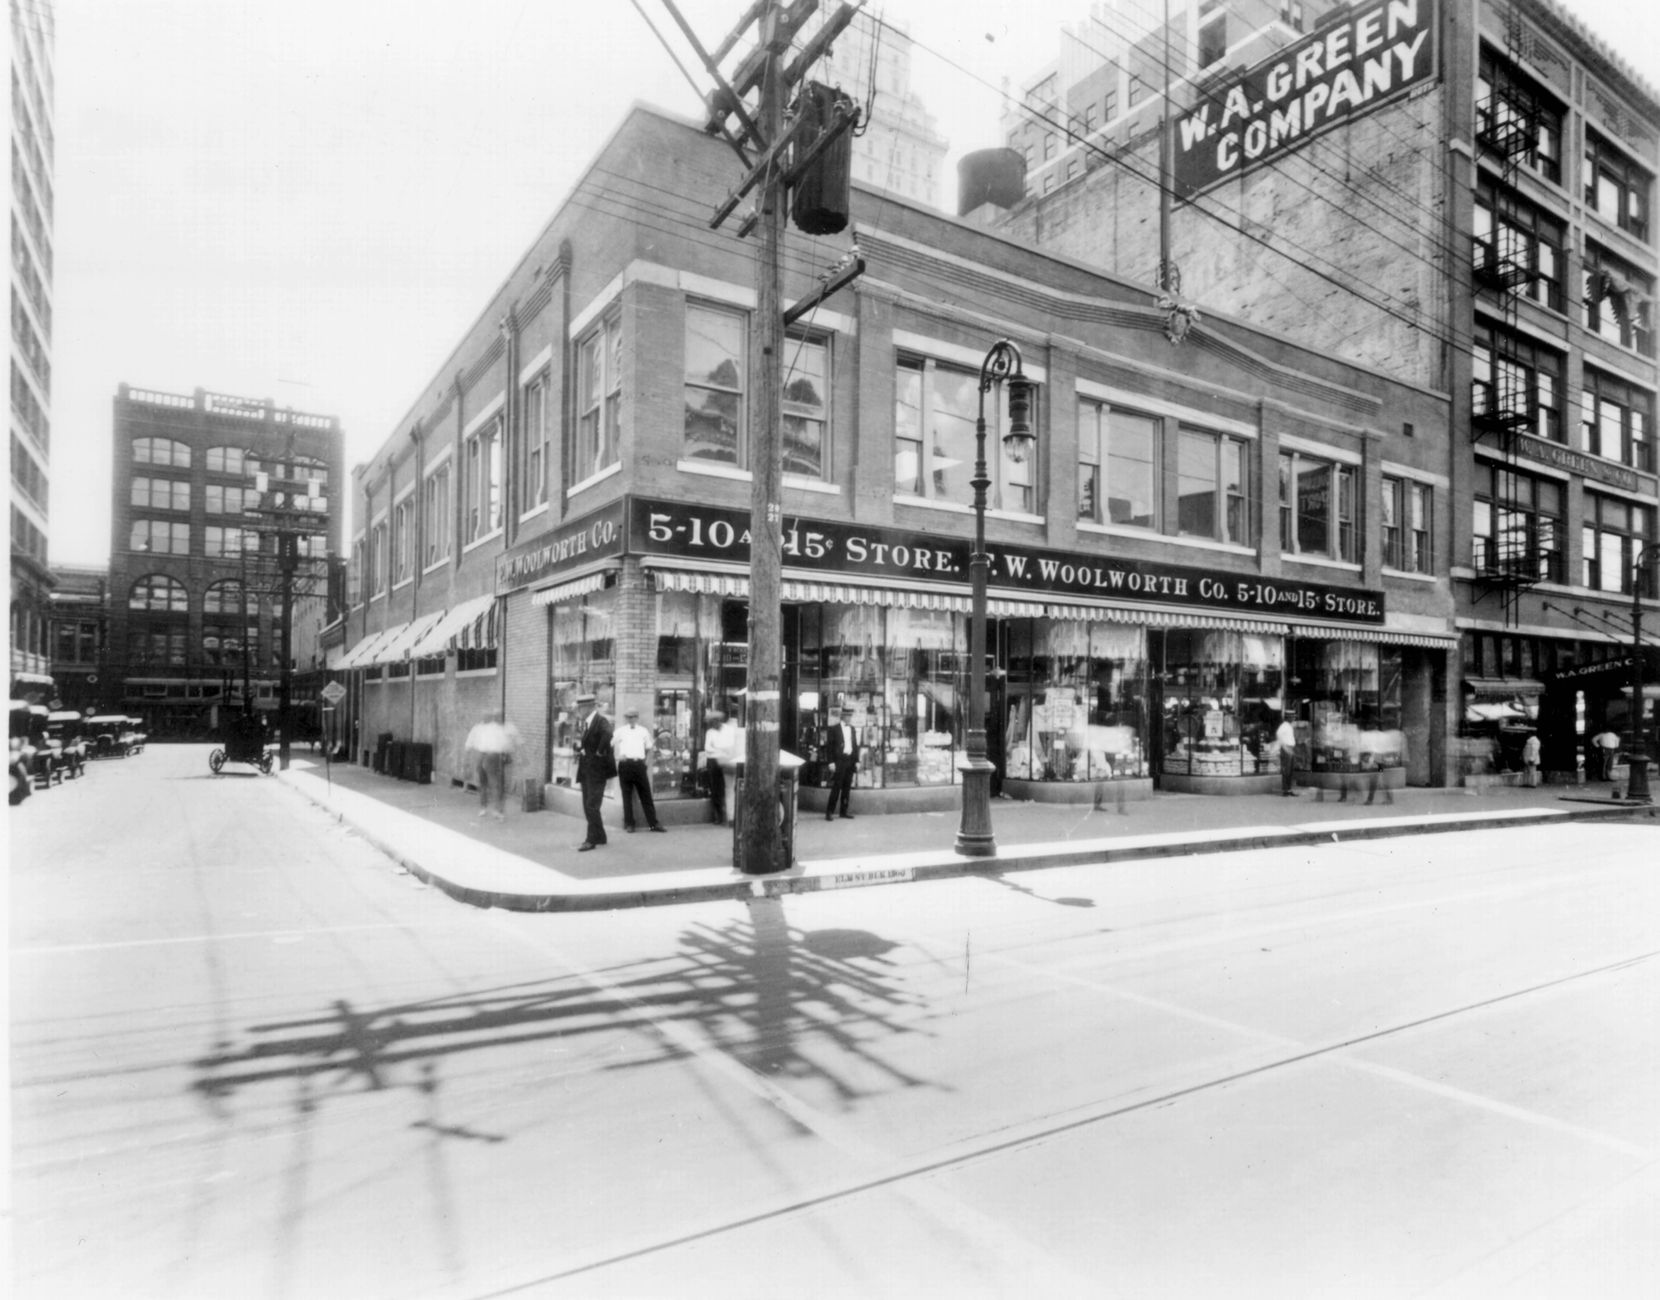 Developers are unveiling plans for retailing on Stone Place, on Main Street in downtown Dallas, and they're looking to the past — such as the way the street appeared in this photo from the 1920s — for their inspiration. [ F.W. Woolworth Co. ]